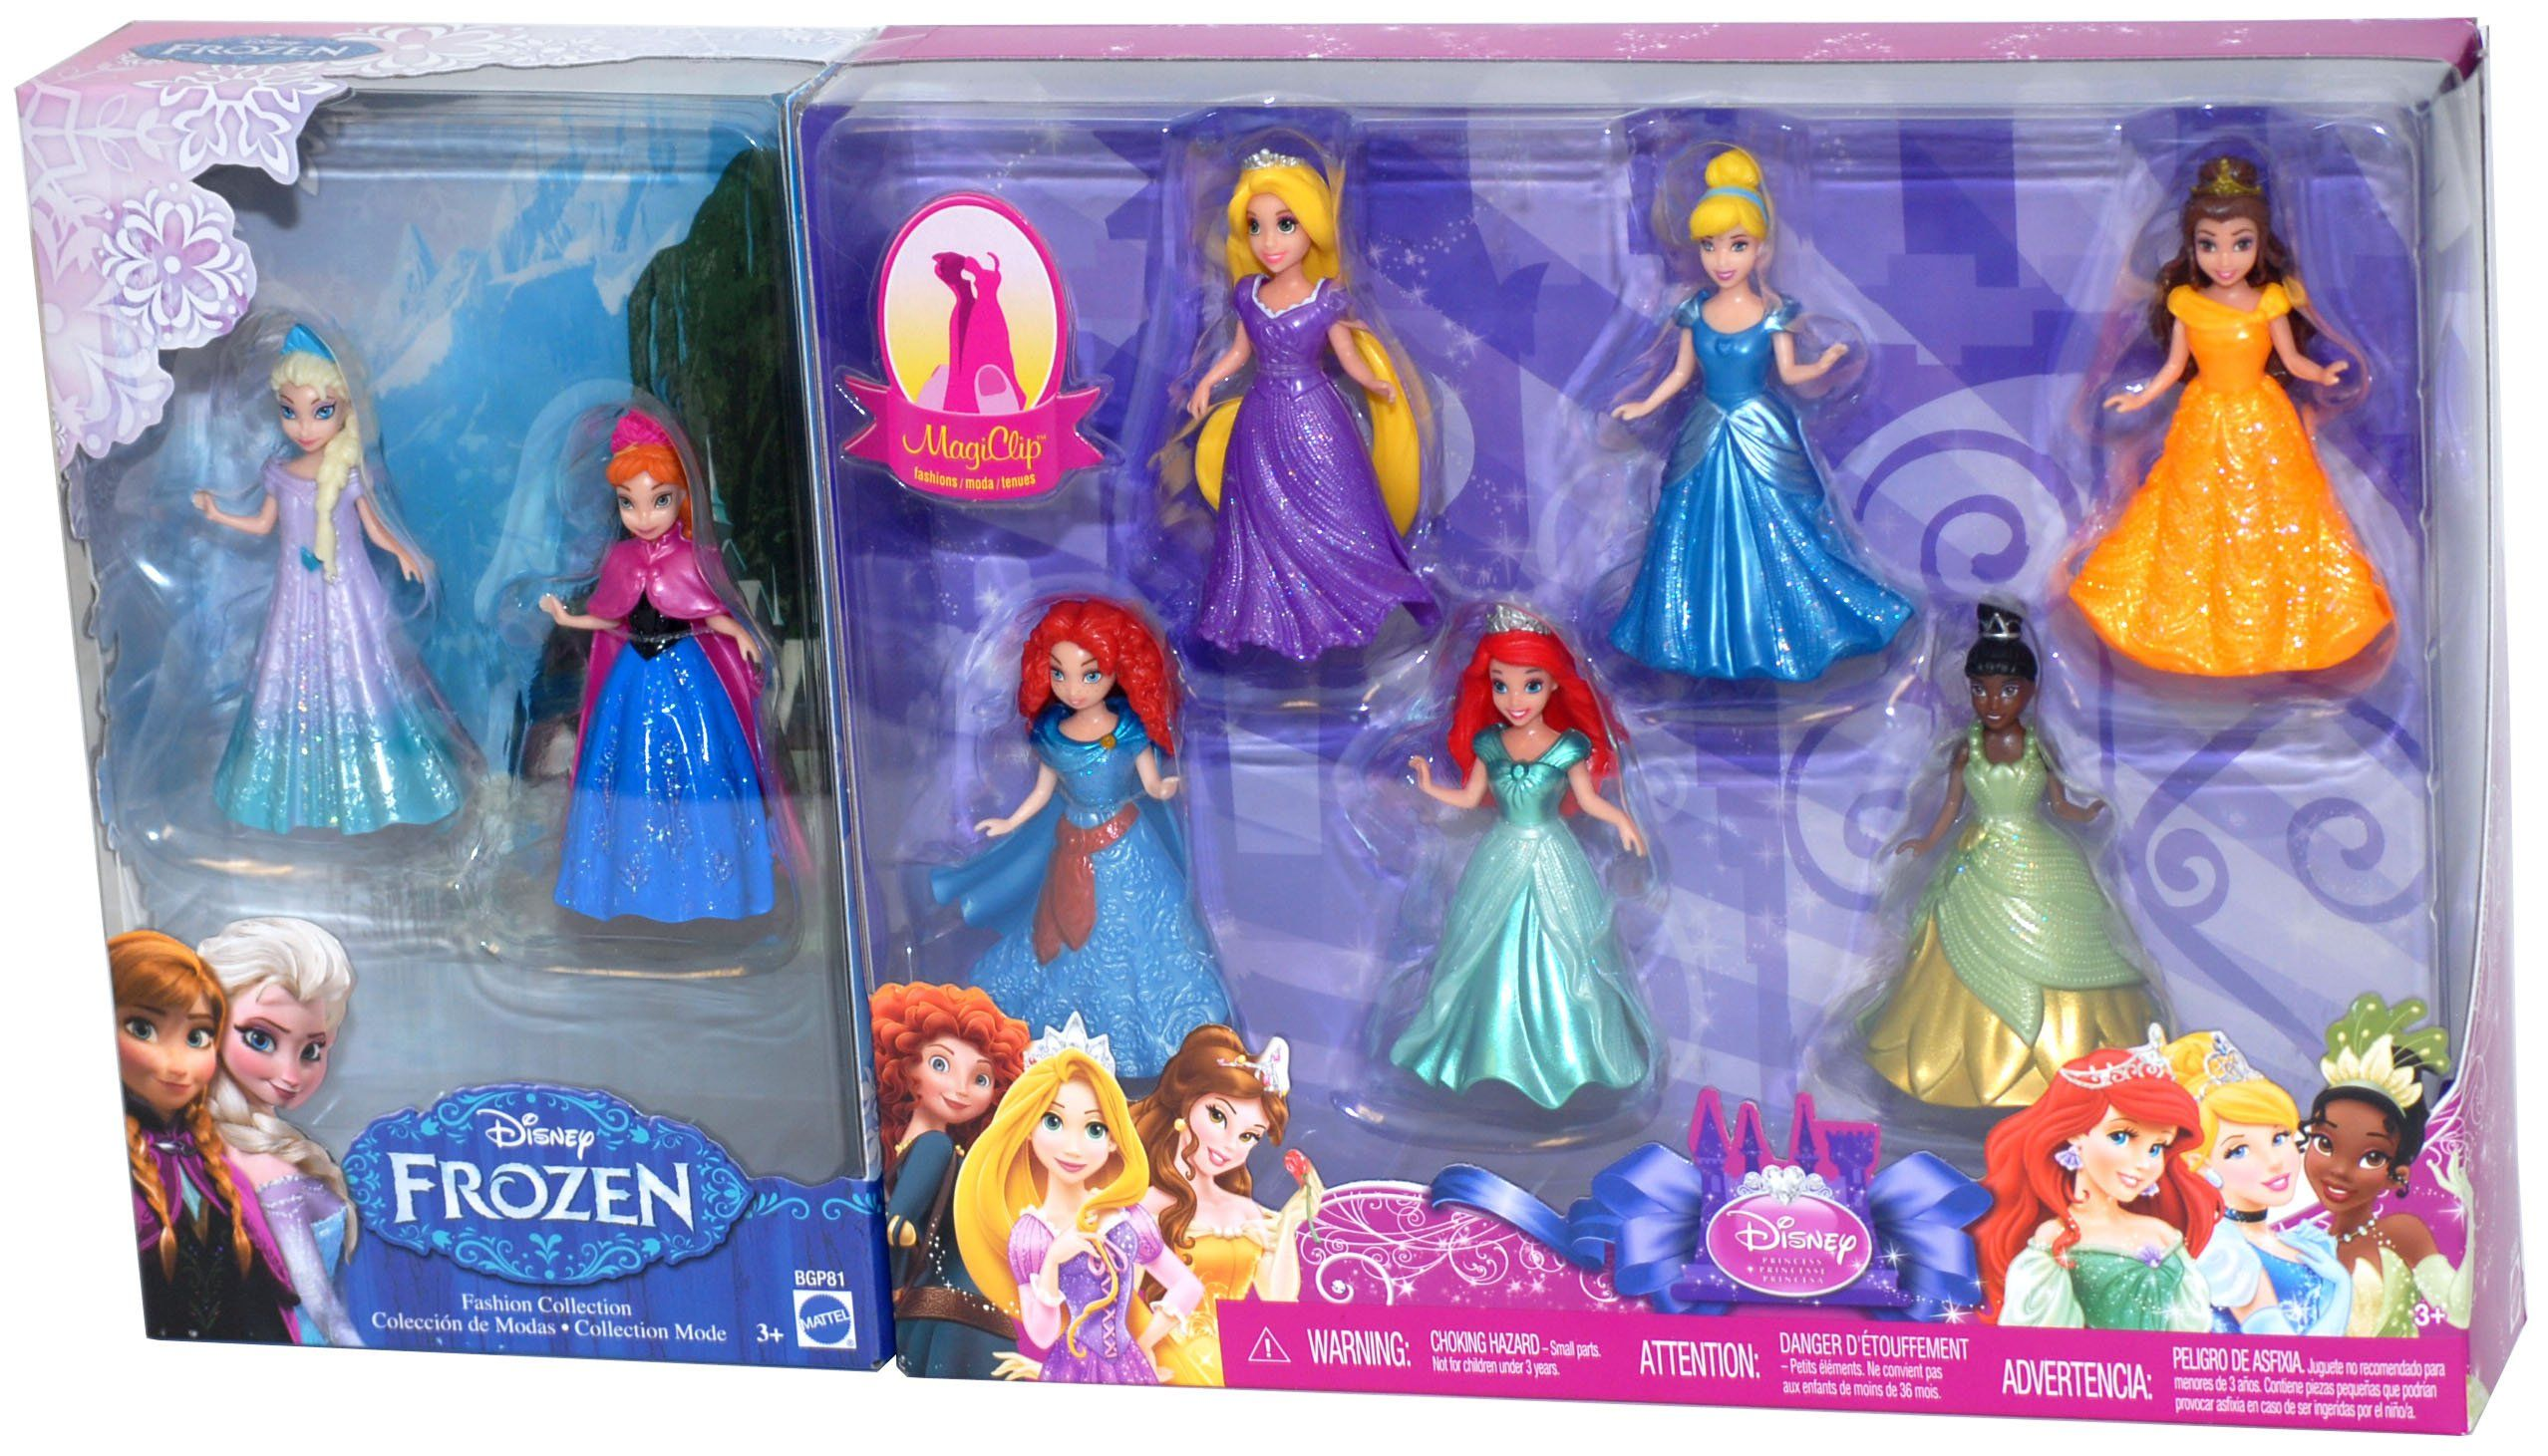 Disney Store Exclusive-Tinker Bell figure Fashion set Magiclip